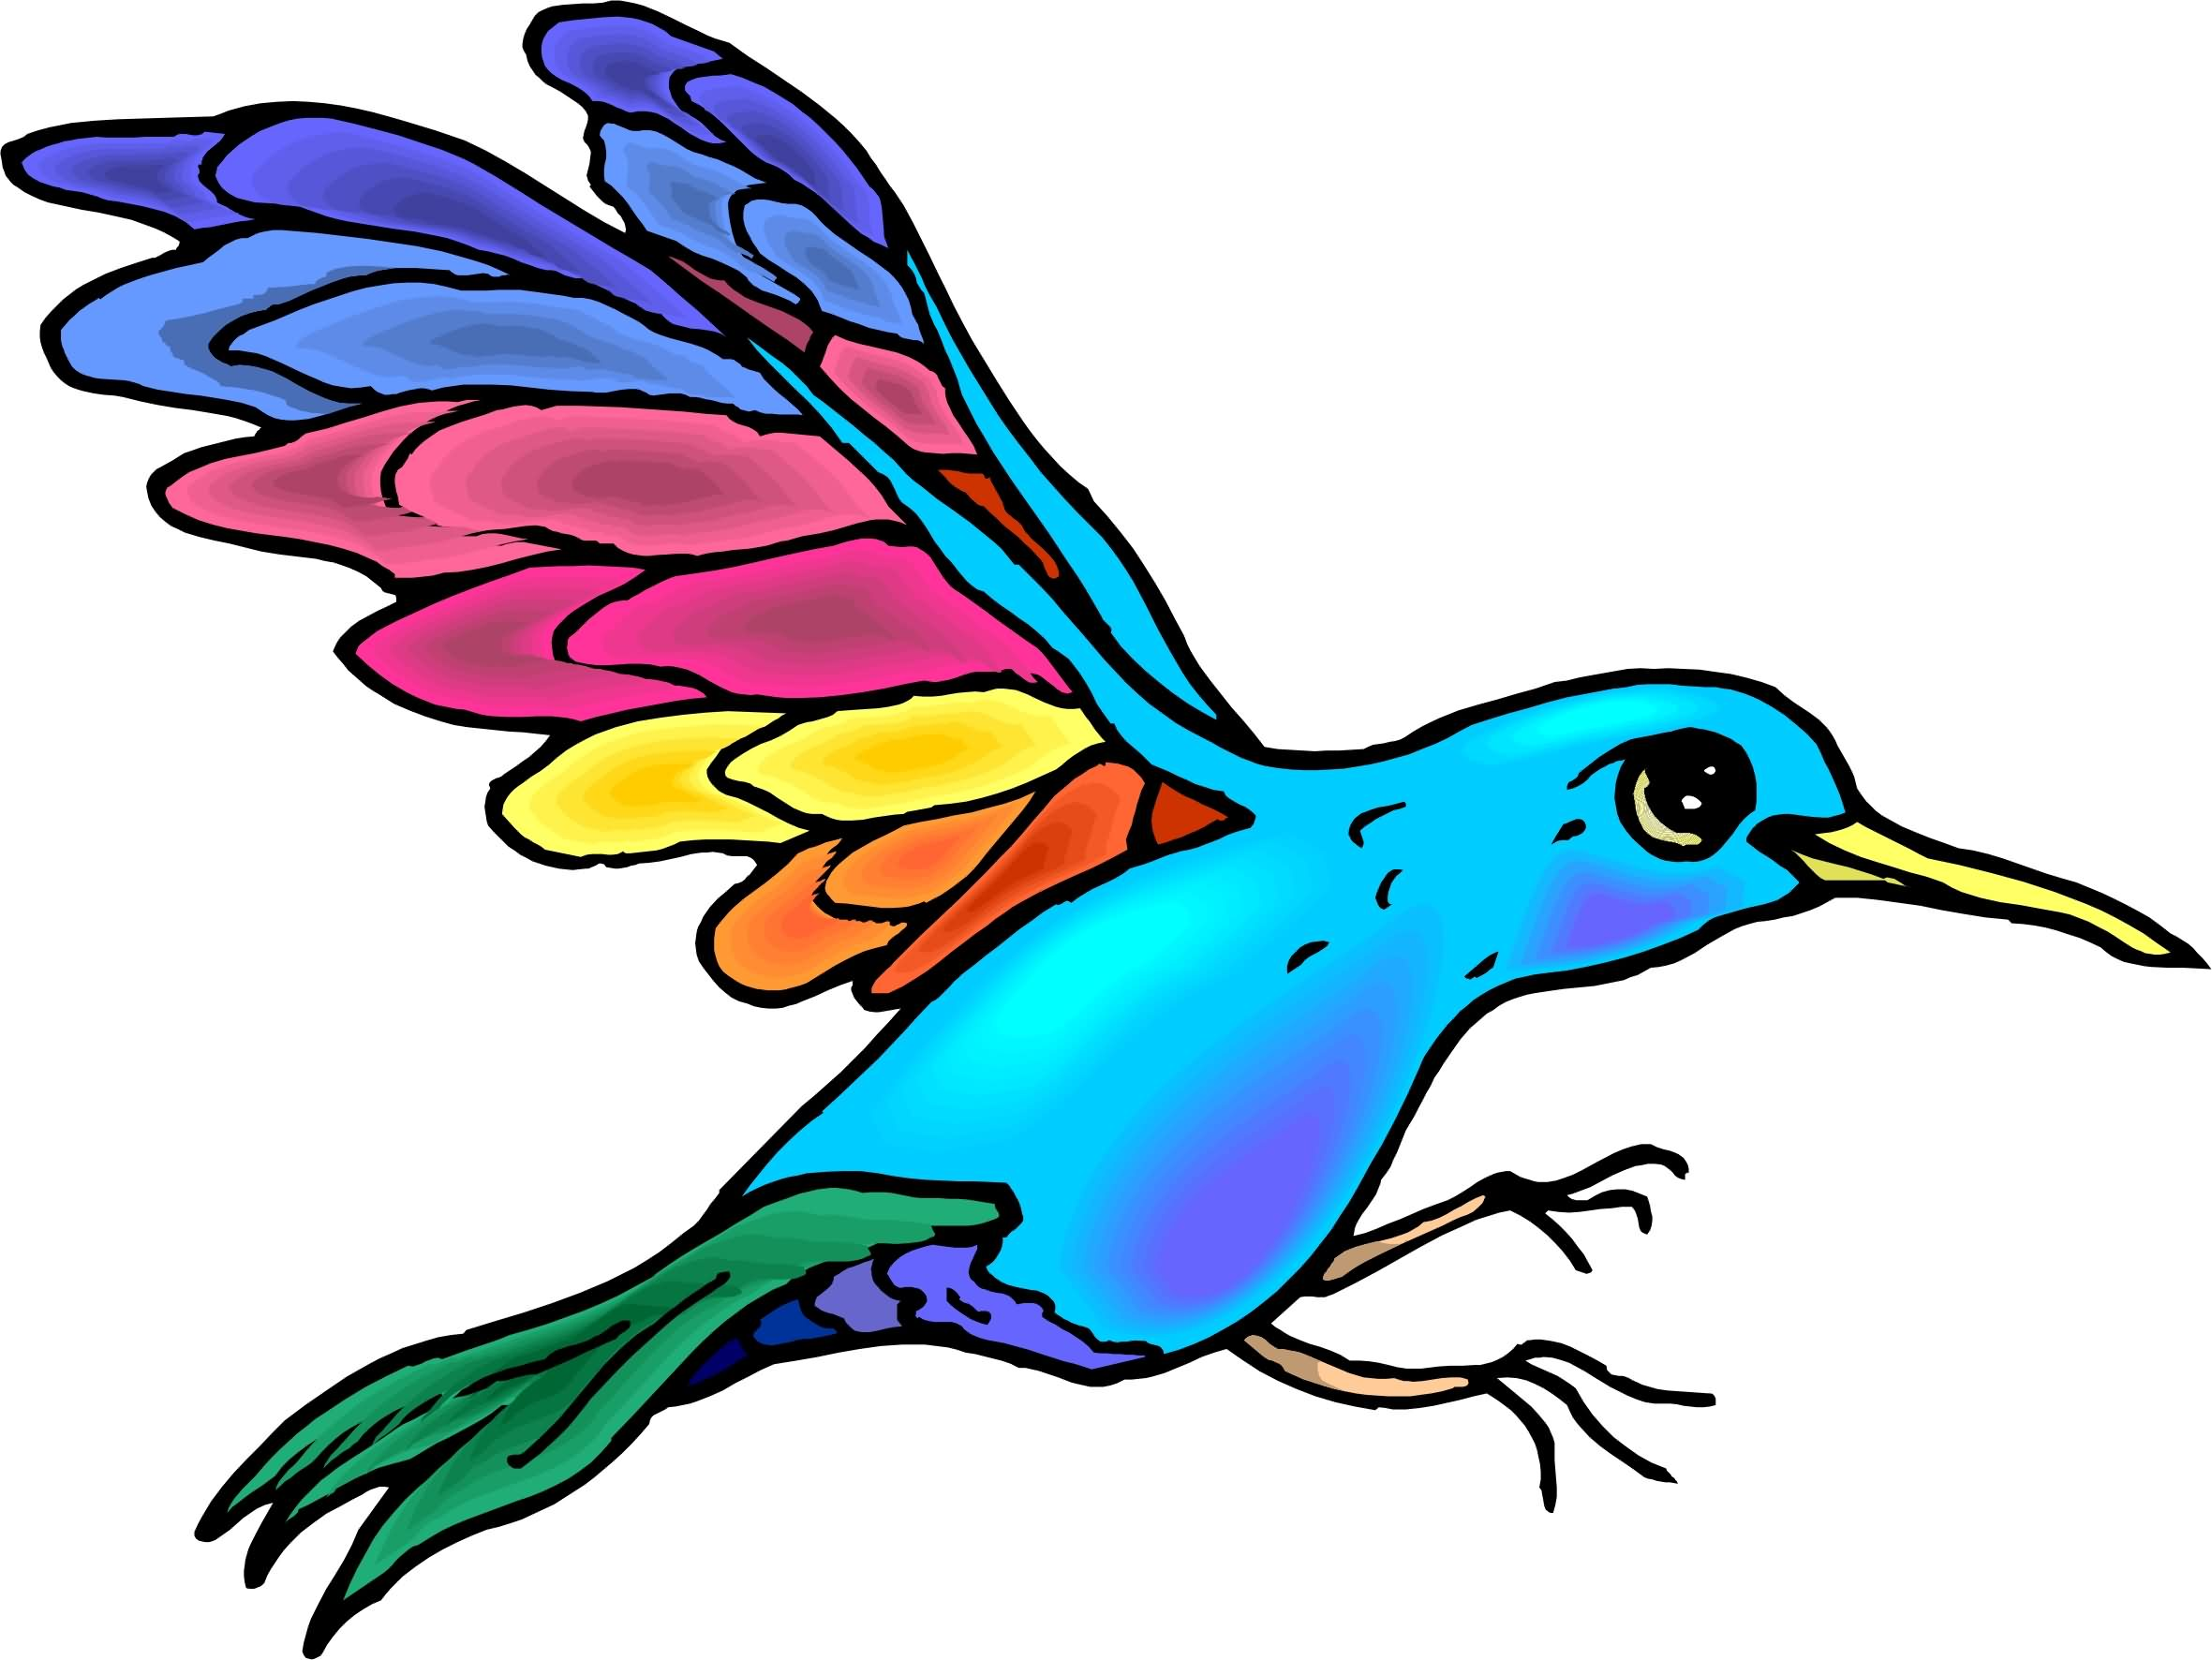 2361x1772 Hummingbird Clipart Beautiful Bird